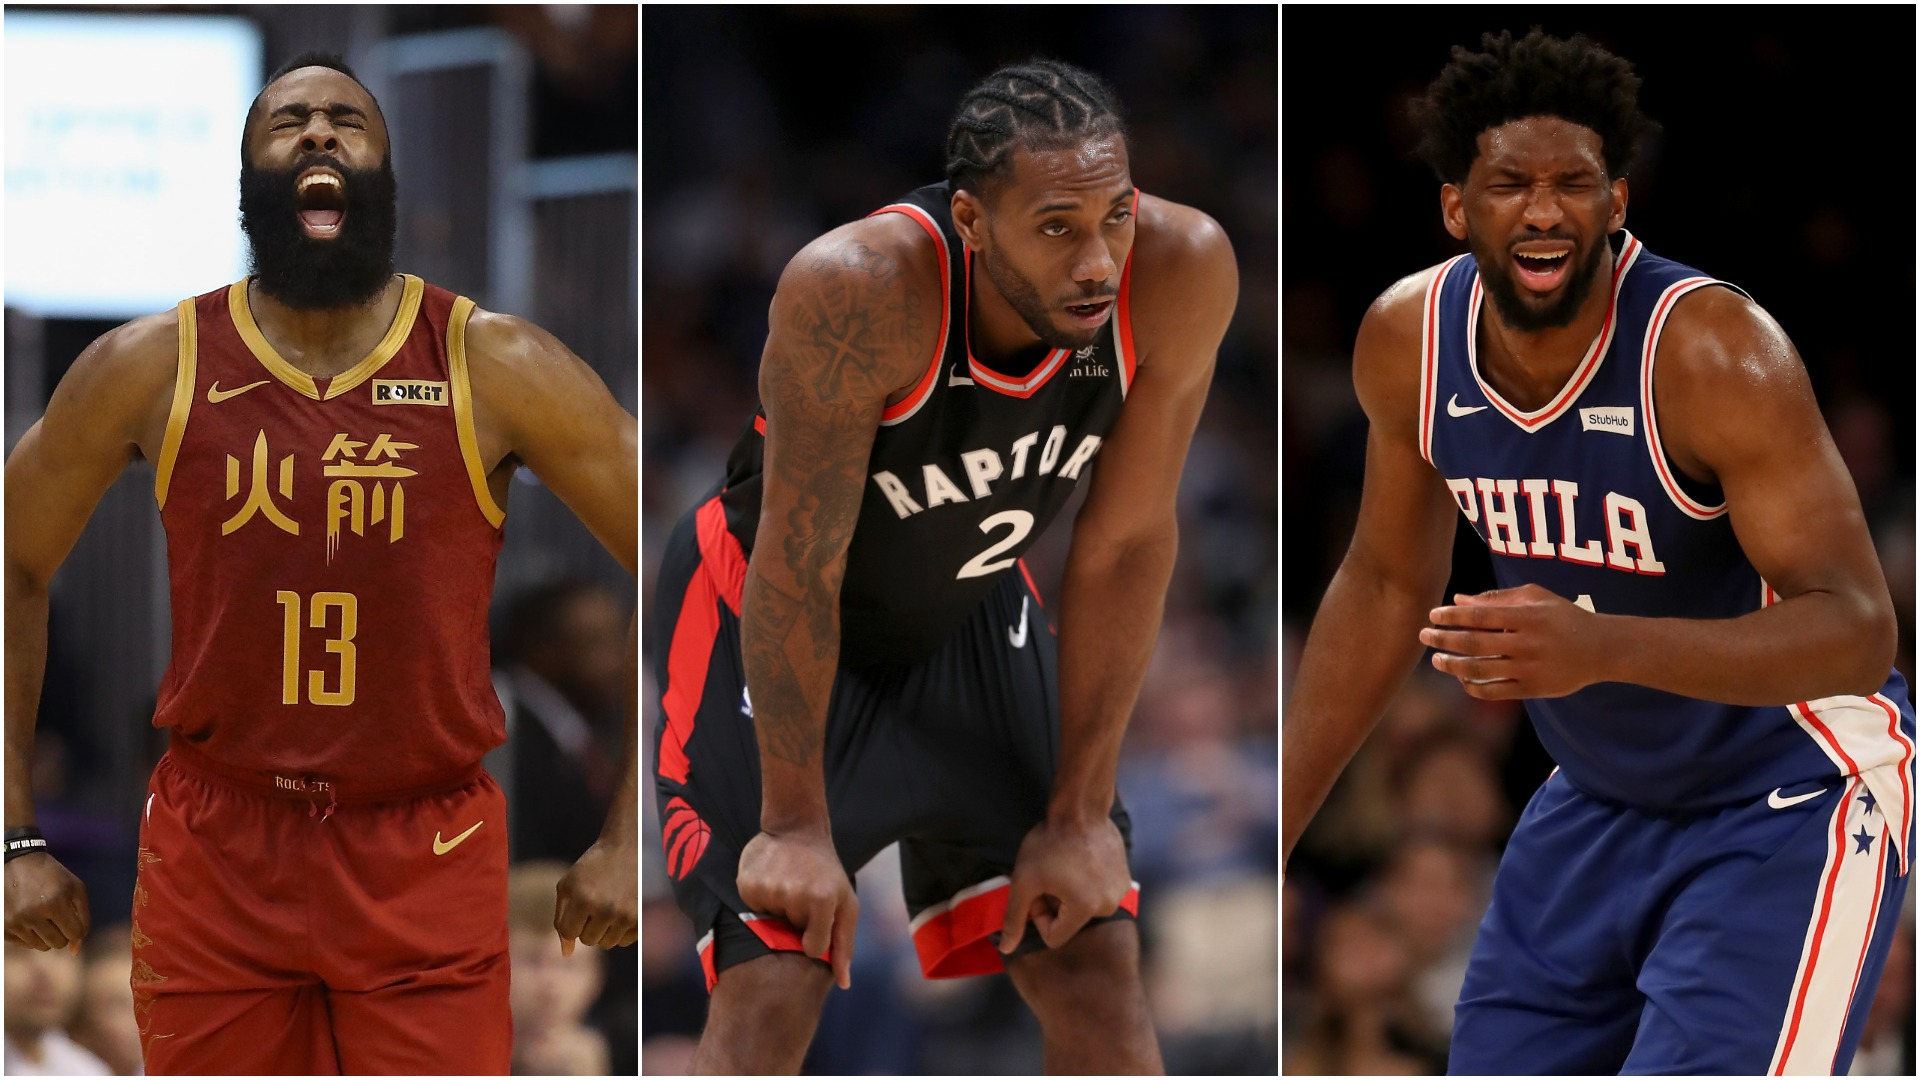 NBA playoffs 2019: Ranking the challengers to the Warriors